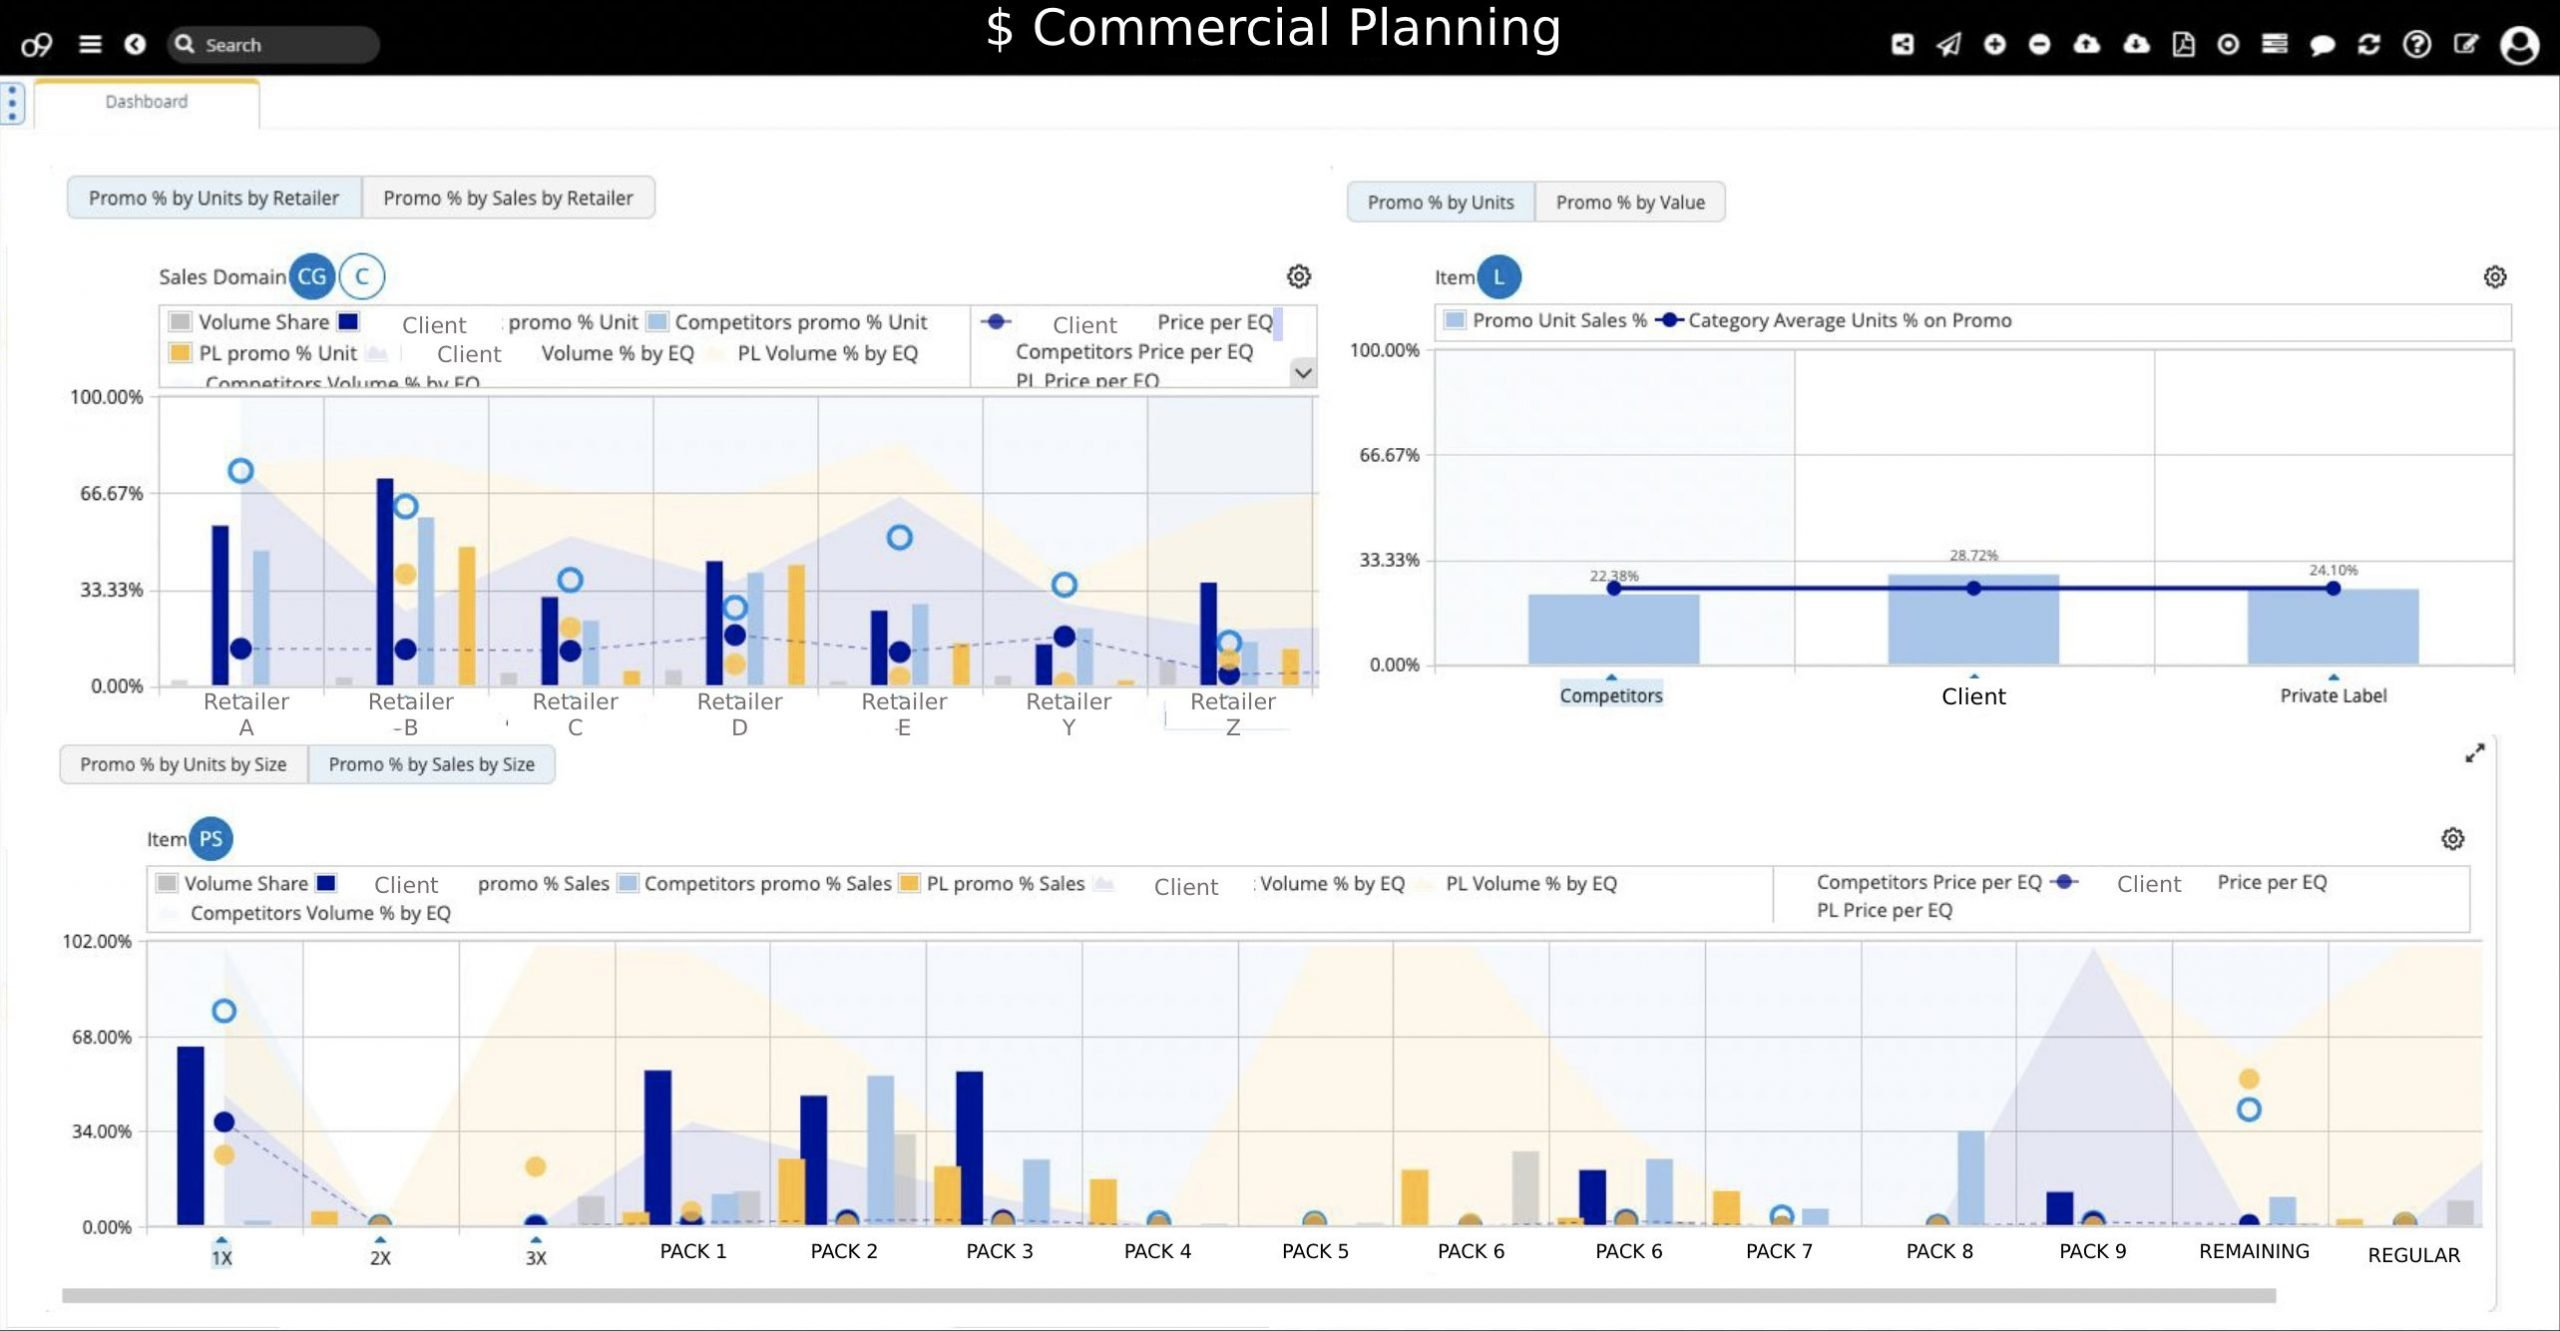 Commercial planning dashboard 2